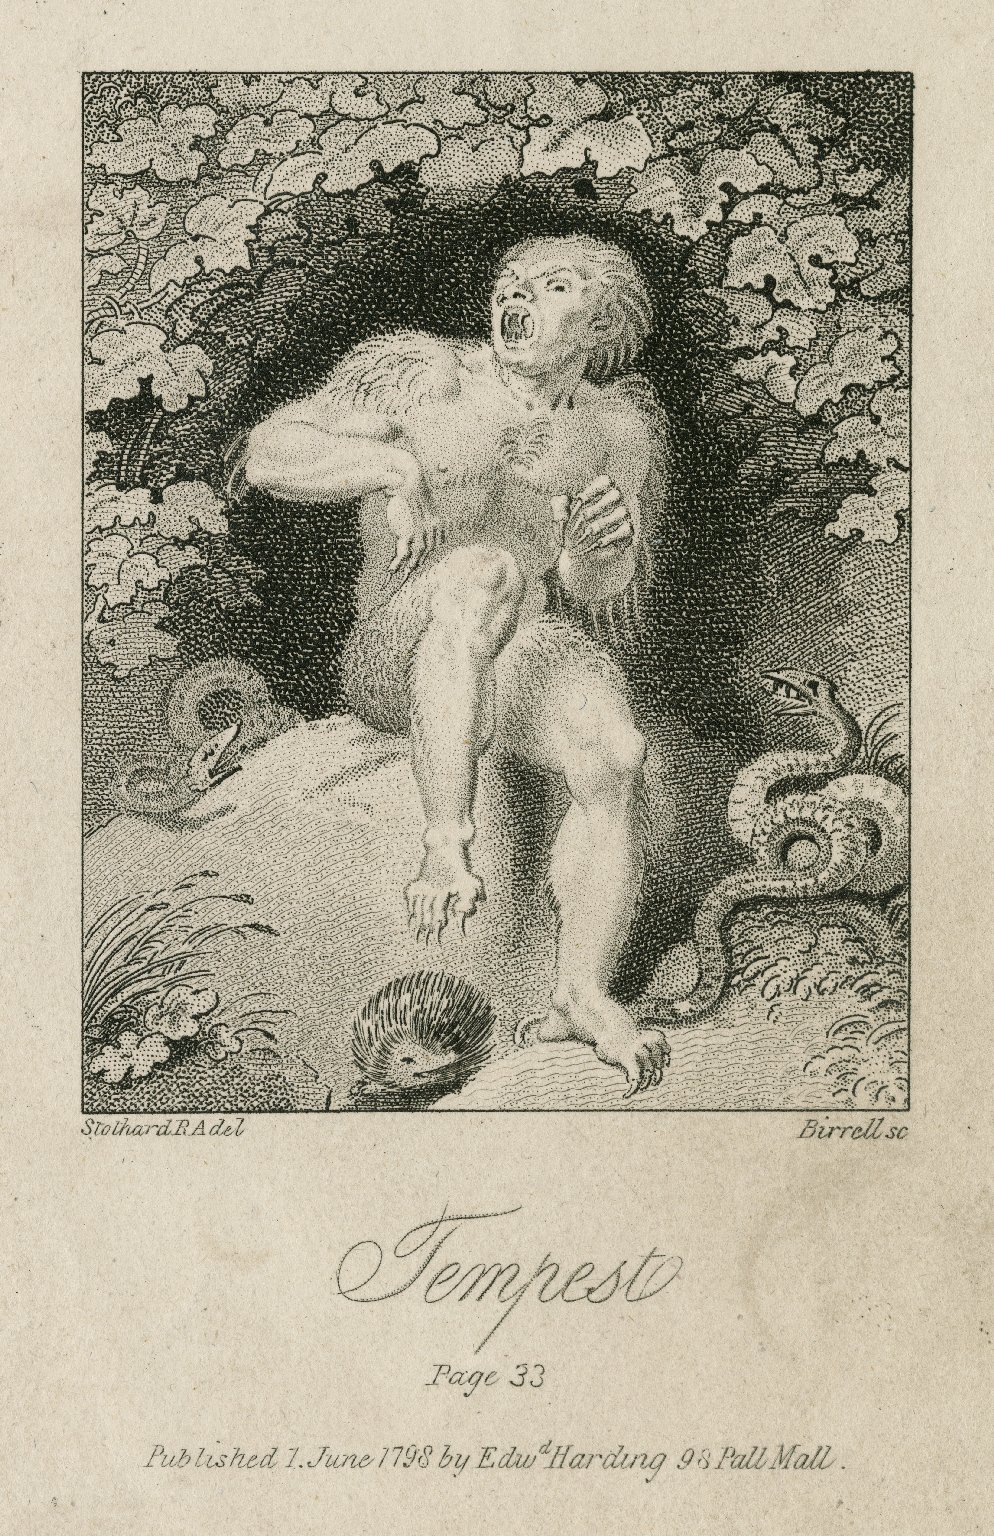 Caliban in Tempest. Thomas Stothard. Print, 1798. Folger Shakespeare Library.